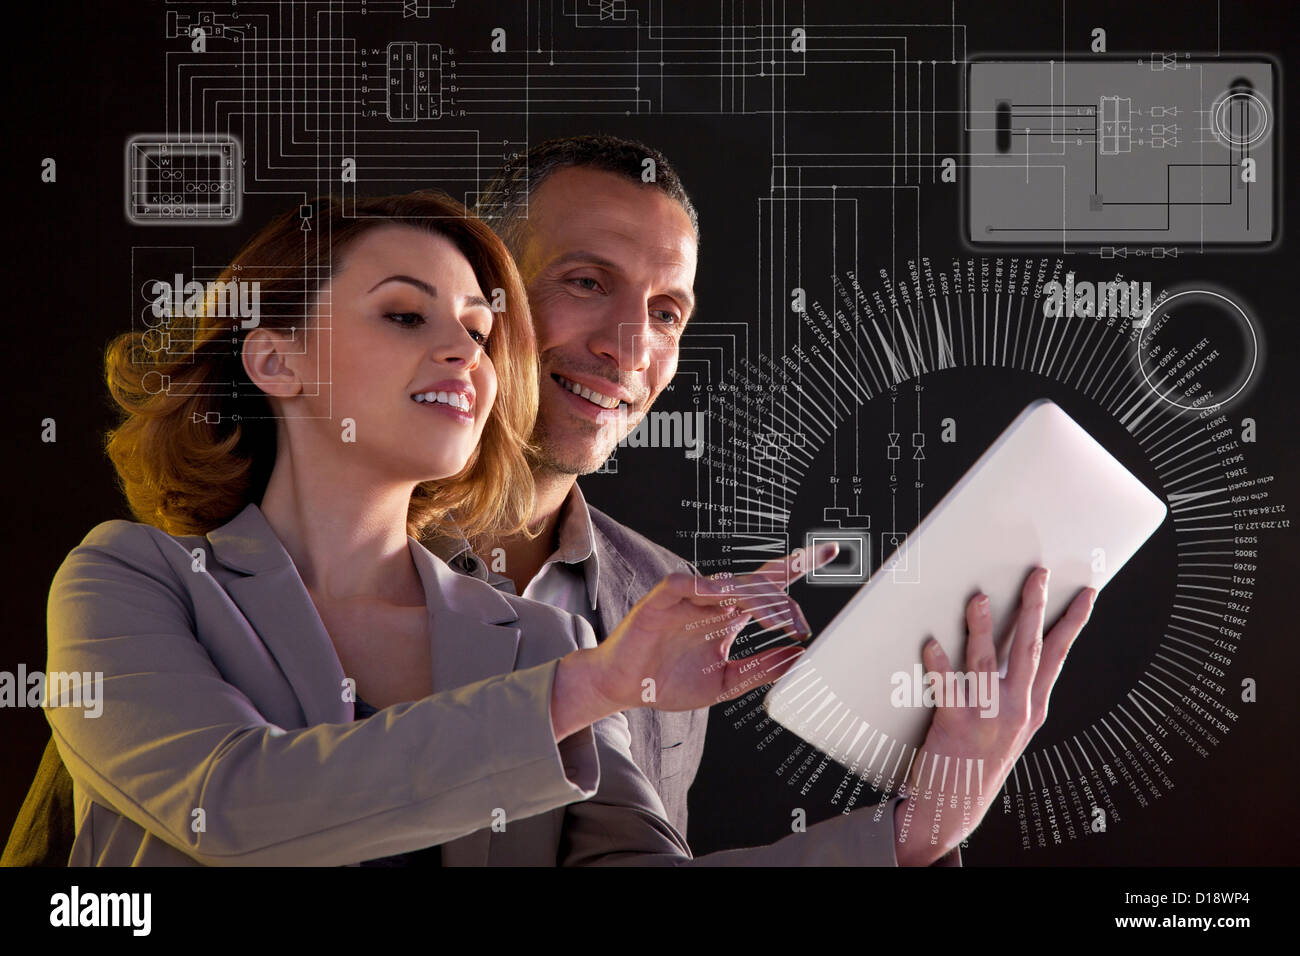 Business people with digital tablet and technological diagram - Stock Image